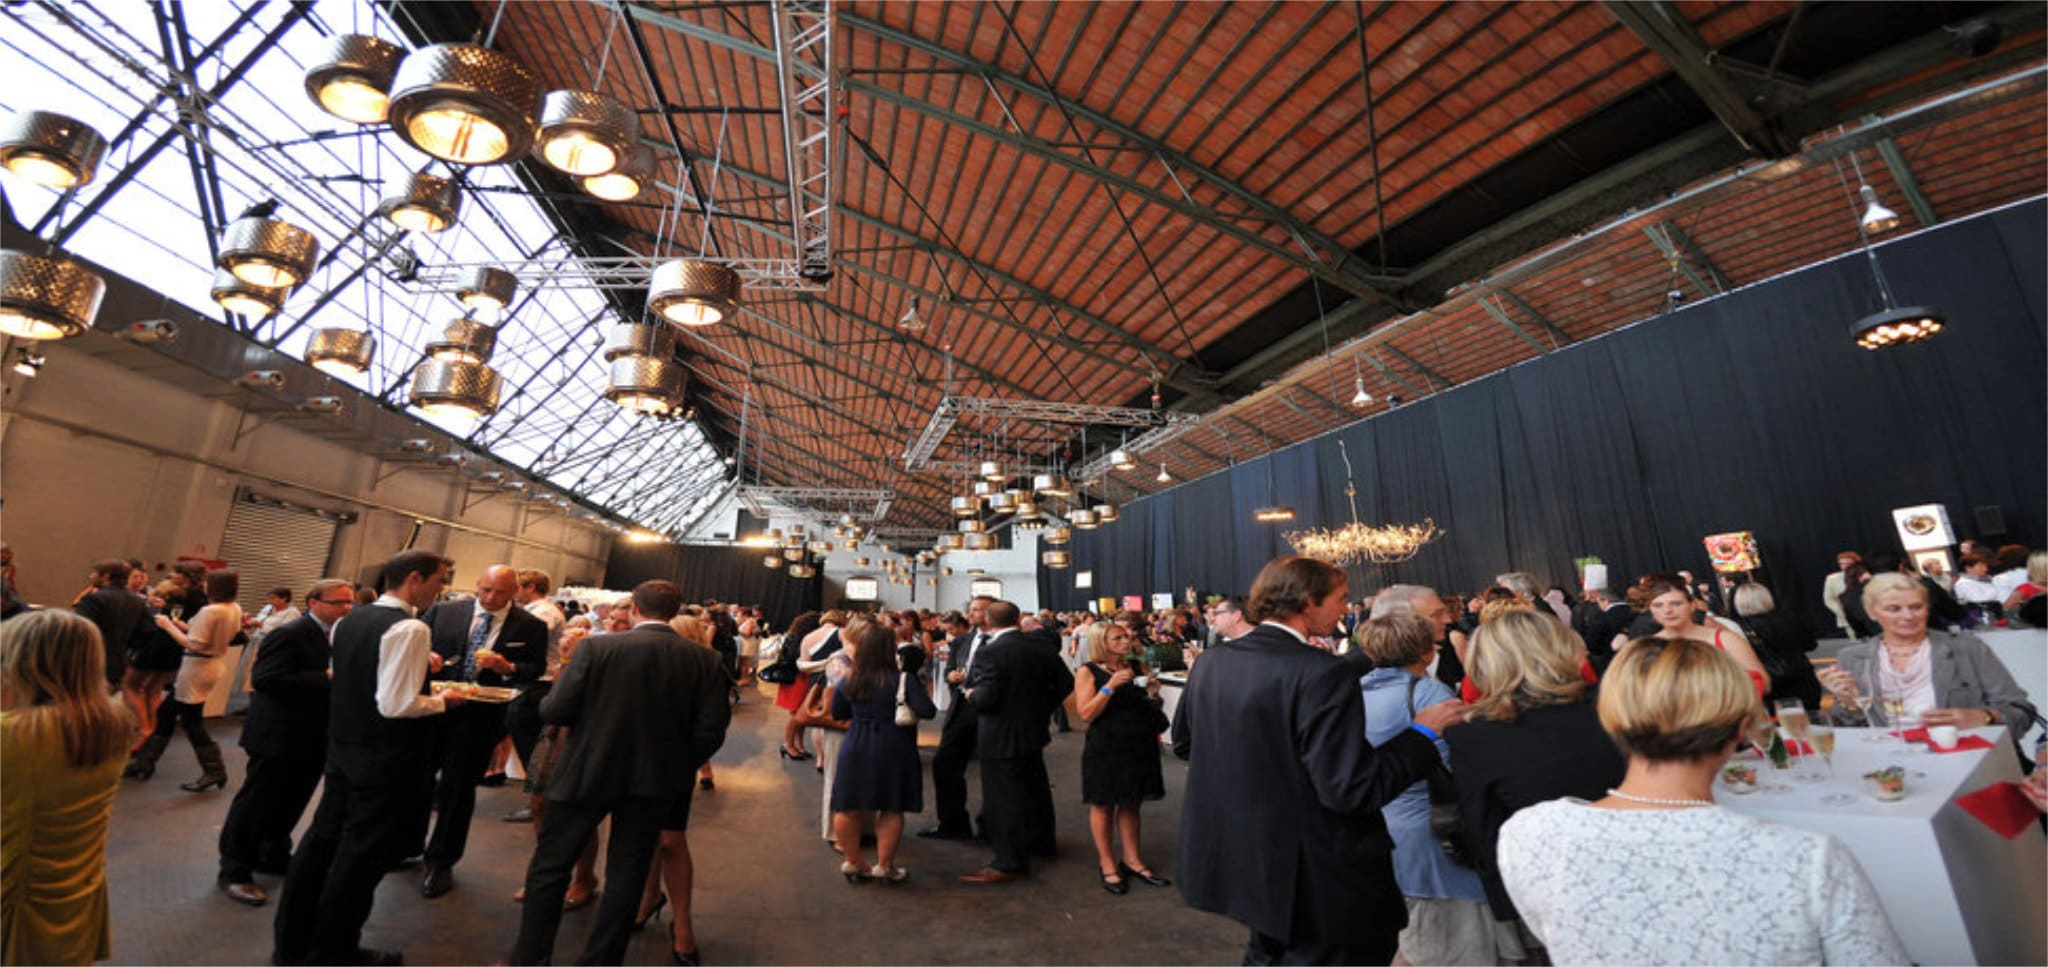 The Sheds - Tour & Taxis - Events - Receptions - Diners